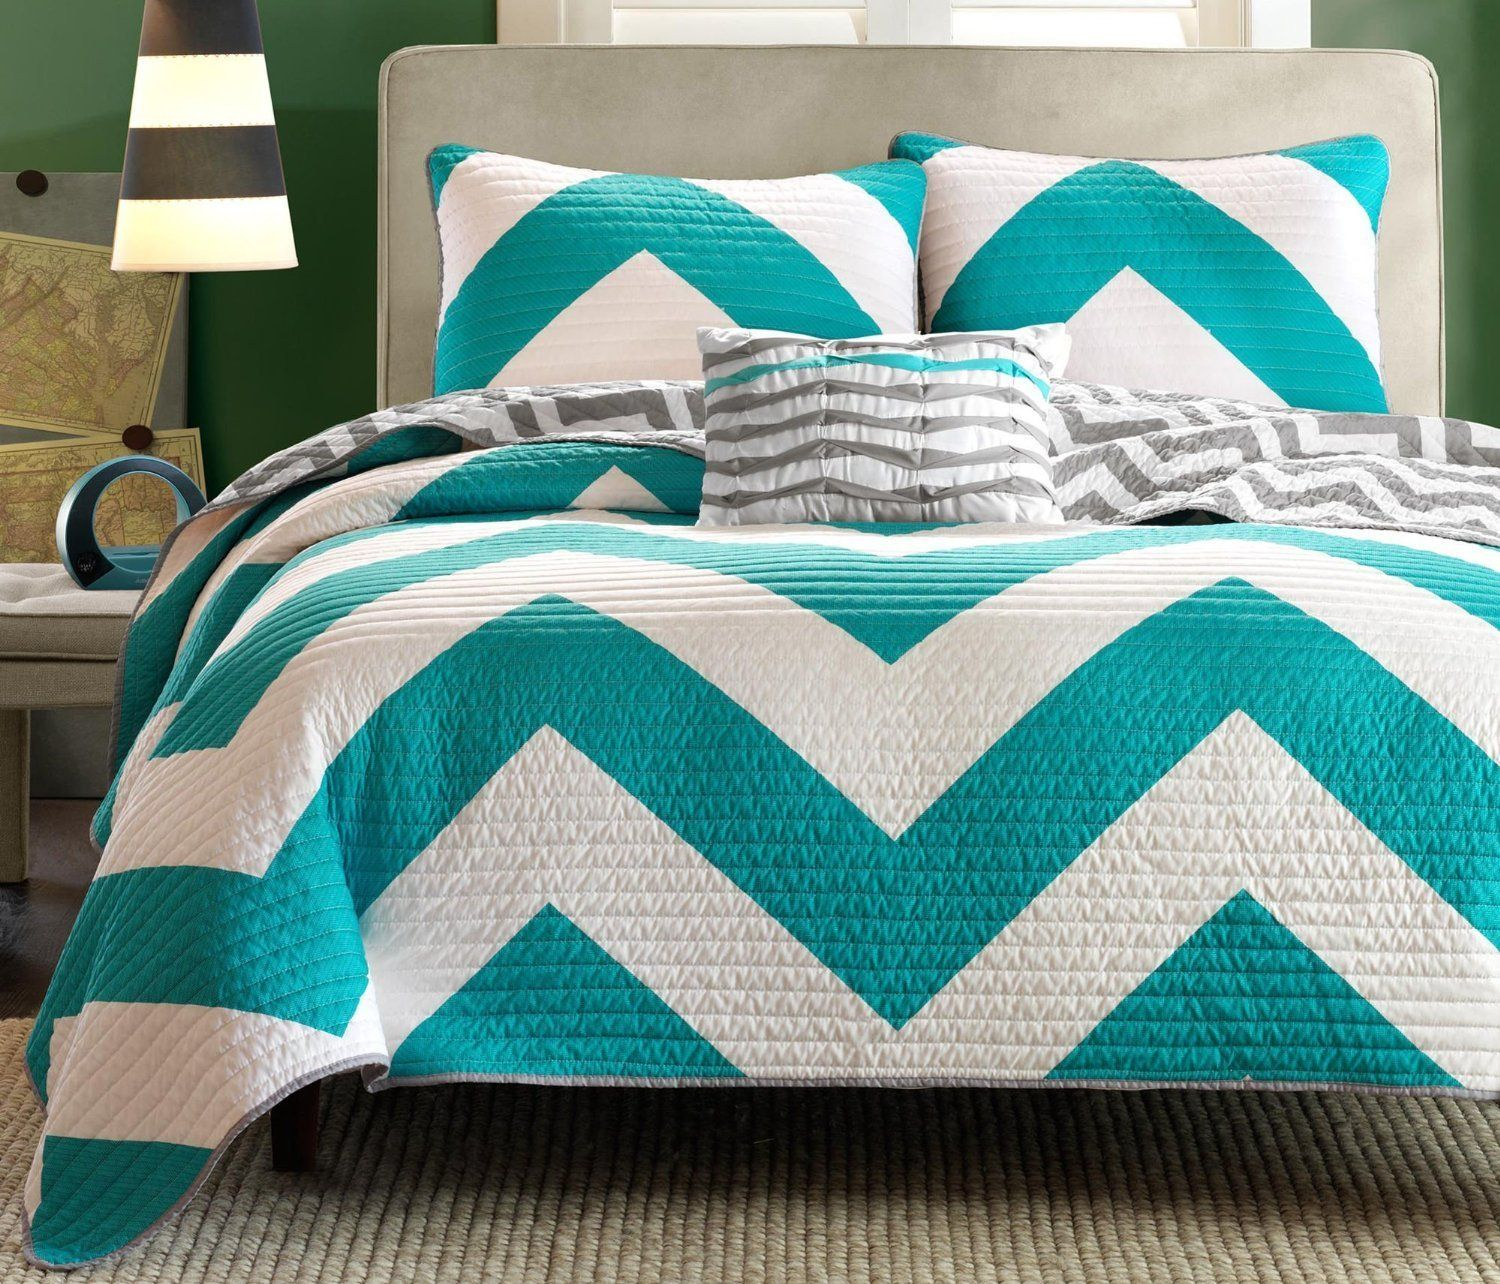 Amazon.com - 4 Pc Zig Zag Reversible Chevron Bedspread Quilt with ... : how to make a quilted bedspread - Adamdwight.com